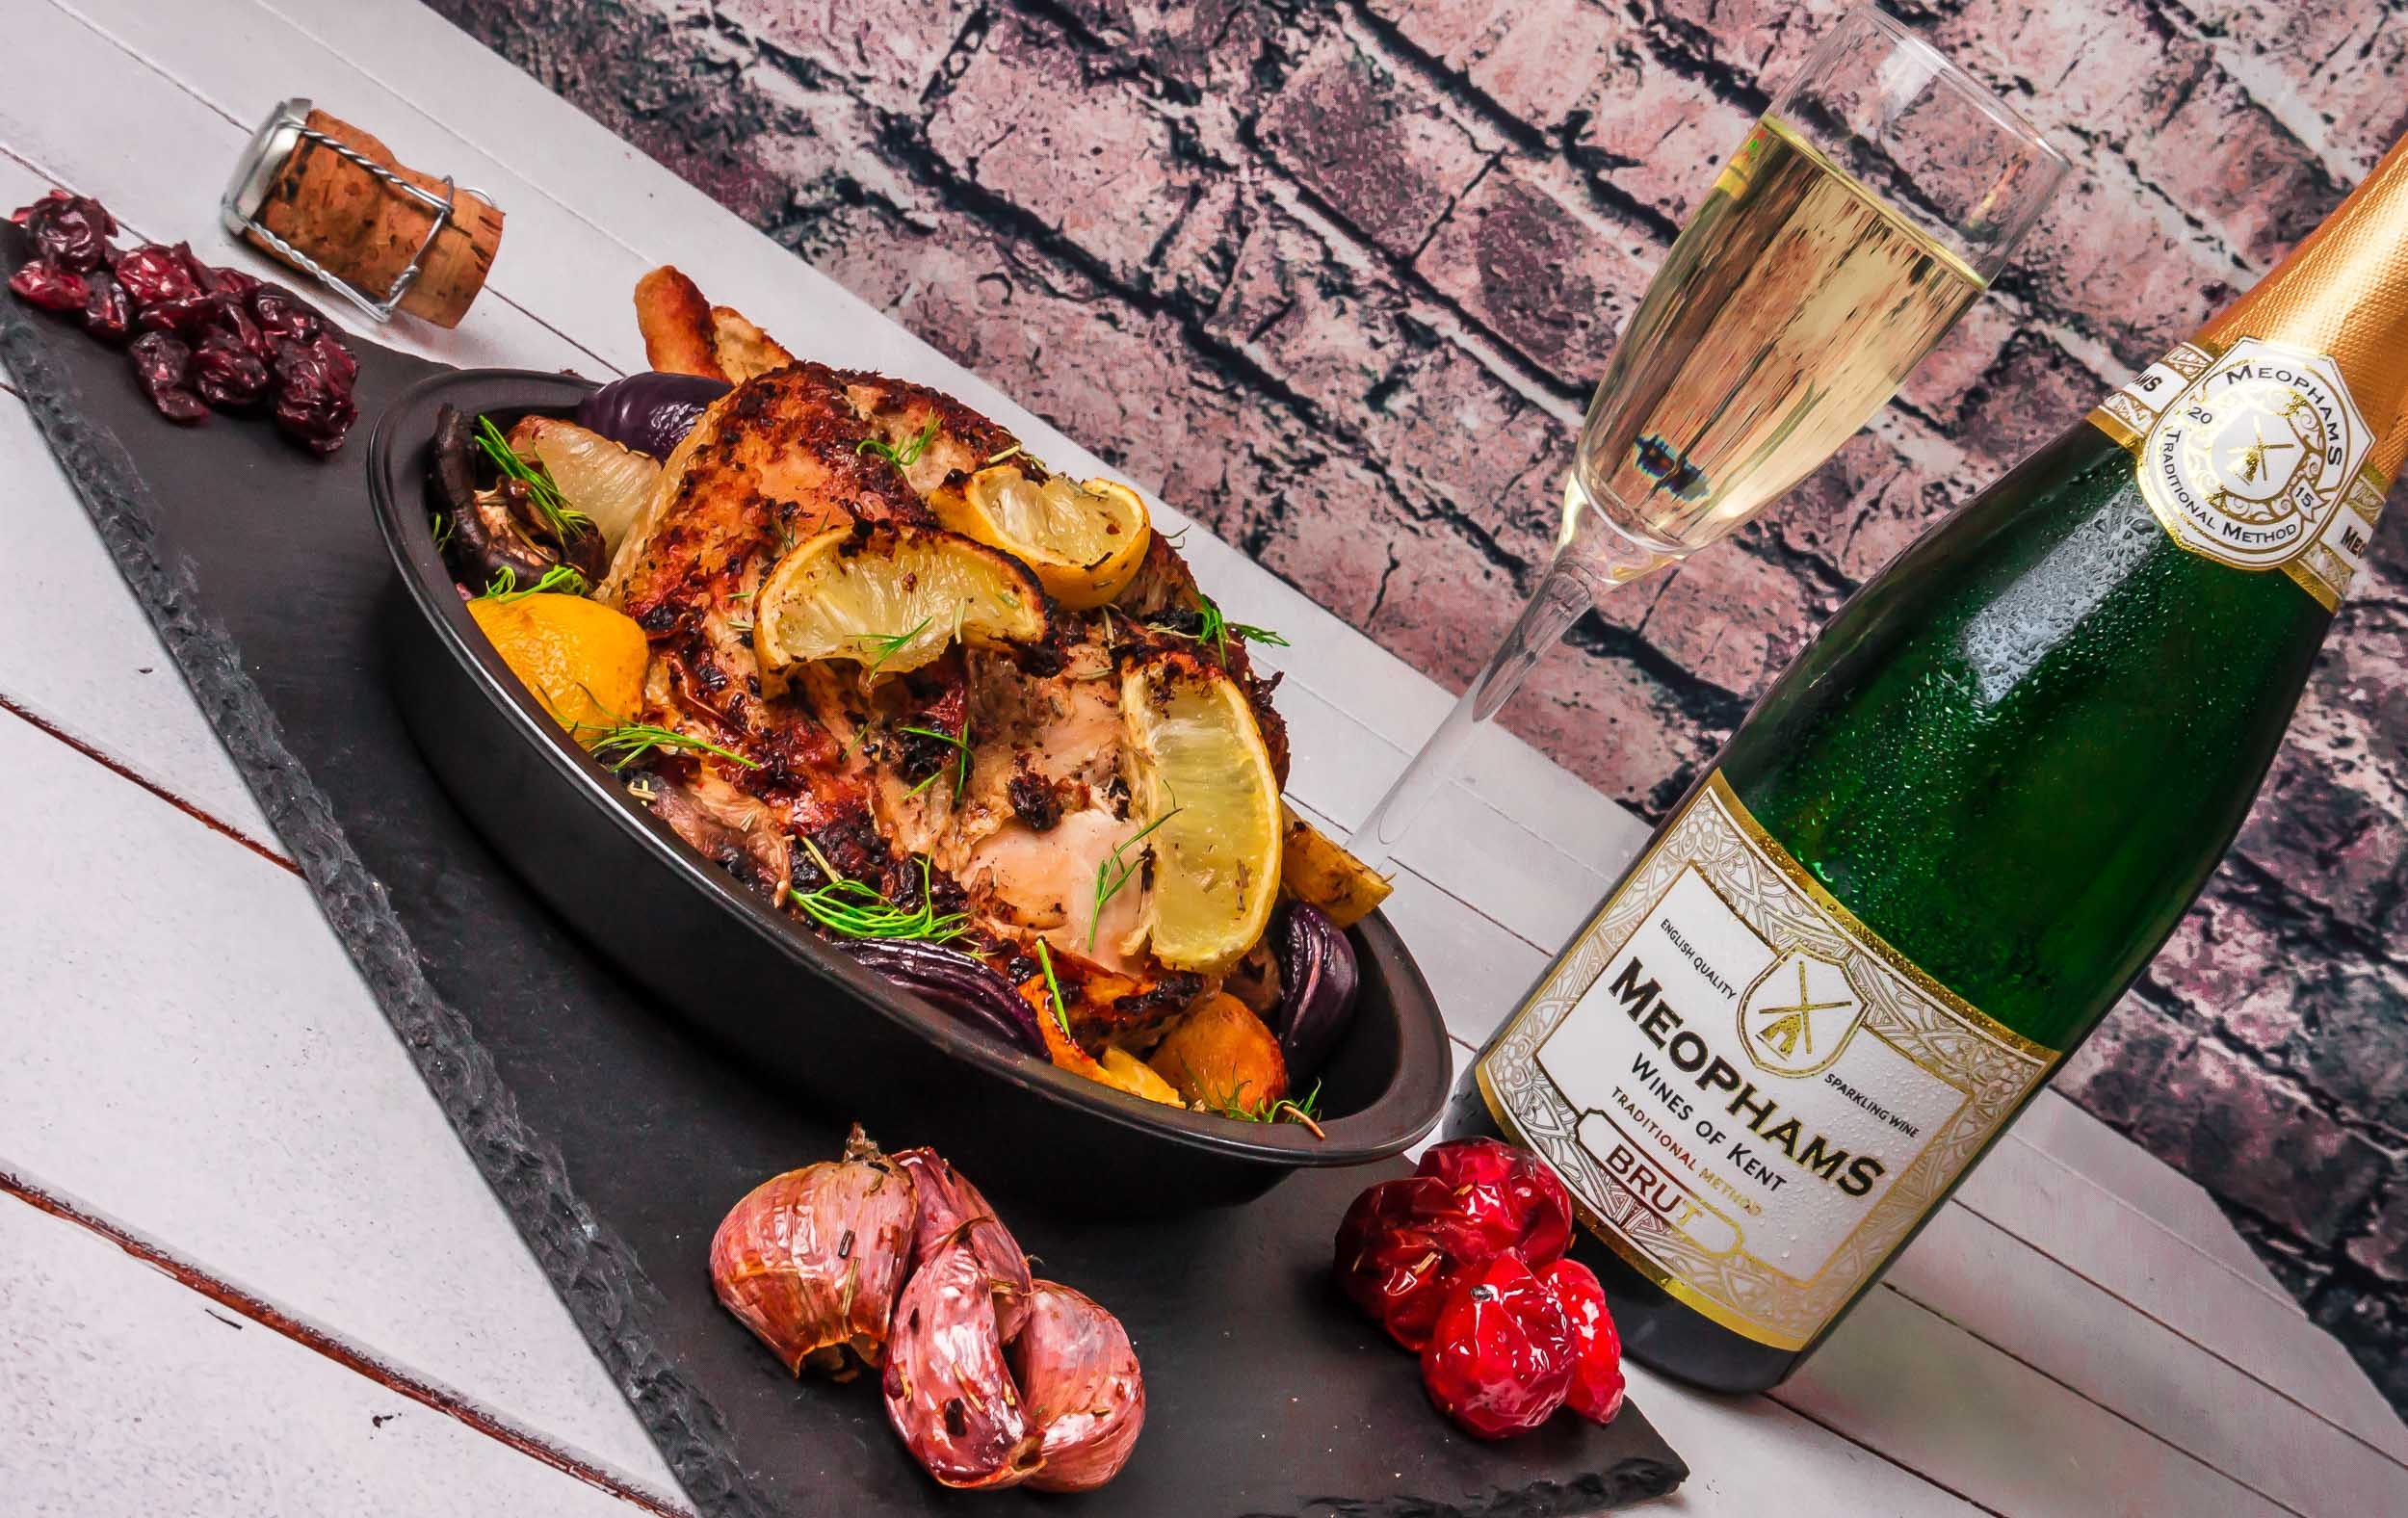 Meophams-Brut-English-Sparkling-Wine-Roast-Chicken-4